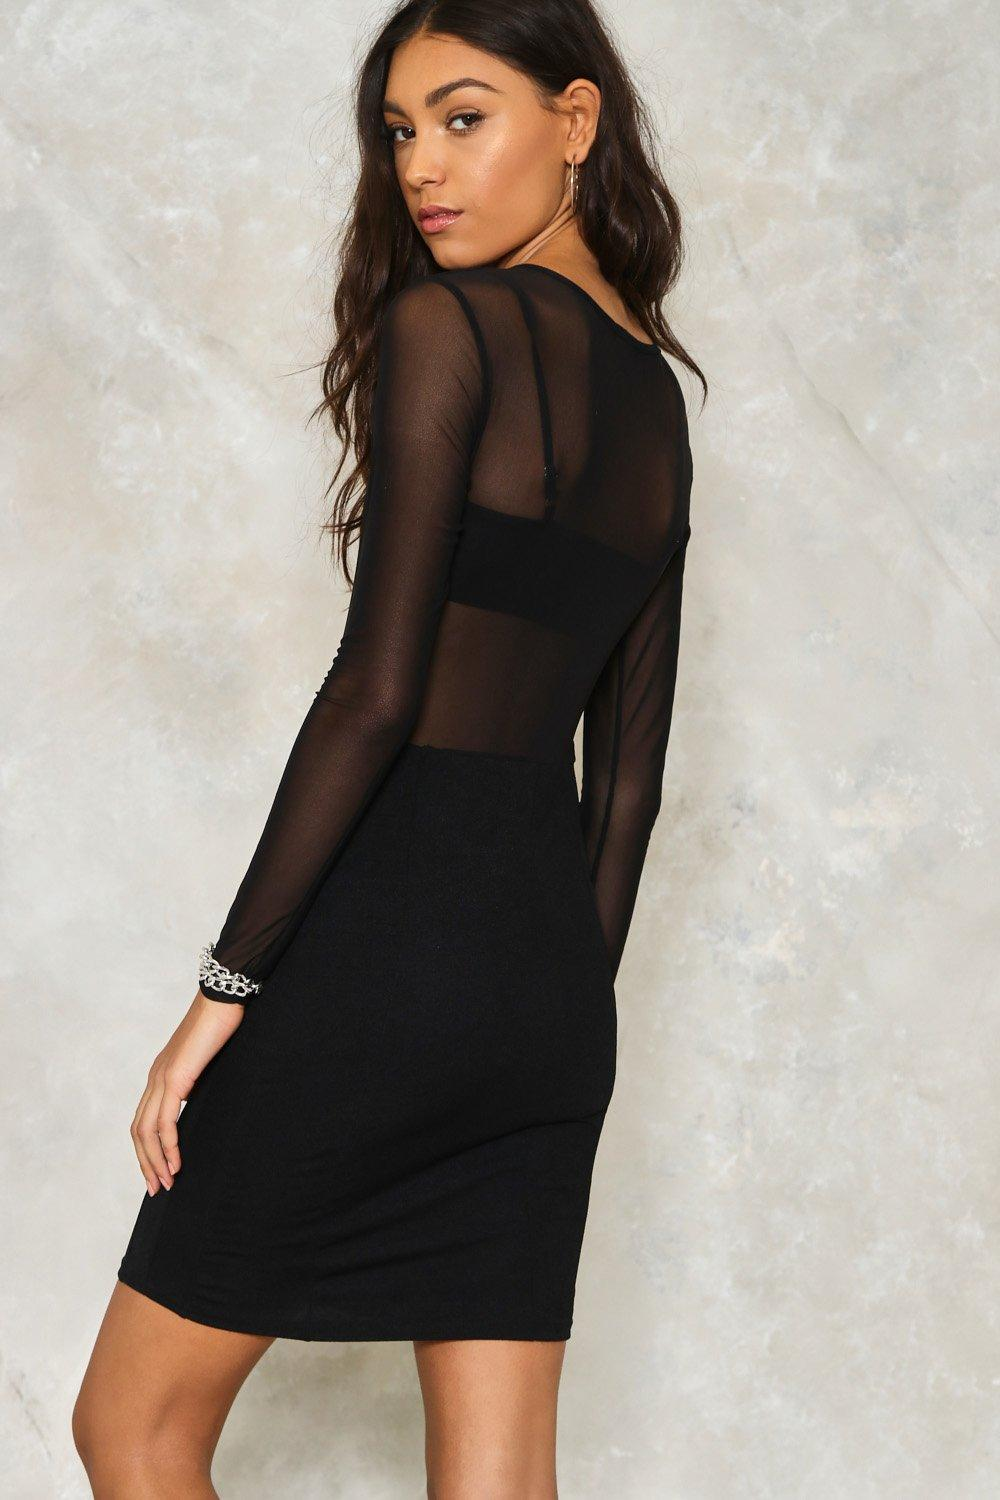 1f56f00f6 Womens Black I Mesh You Bodycon Dress. Hover to zoom